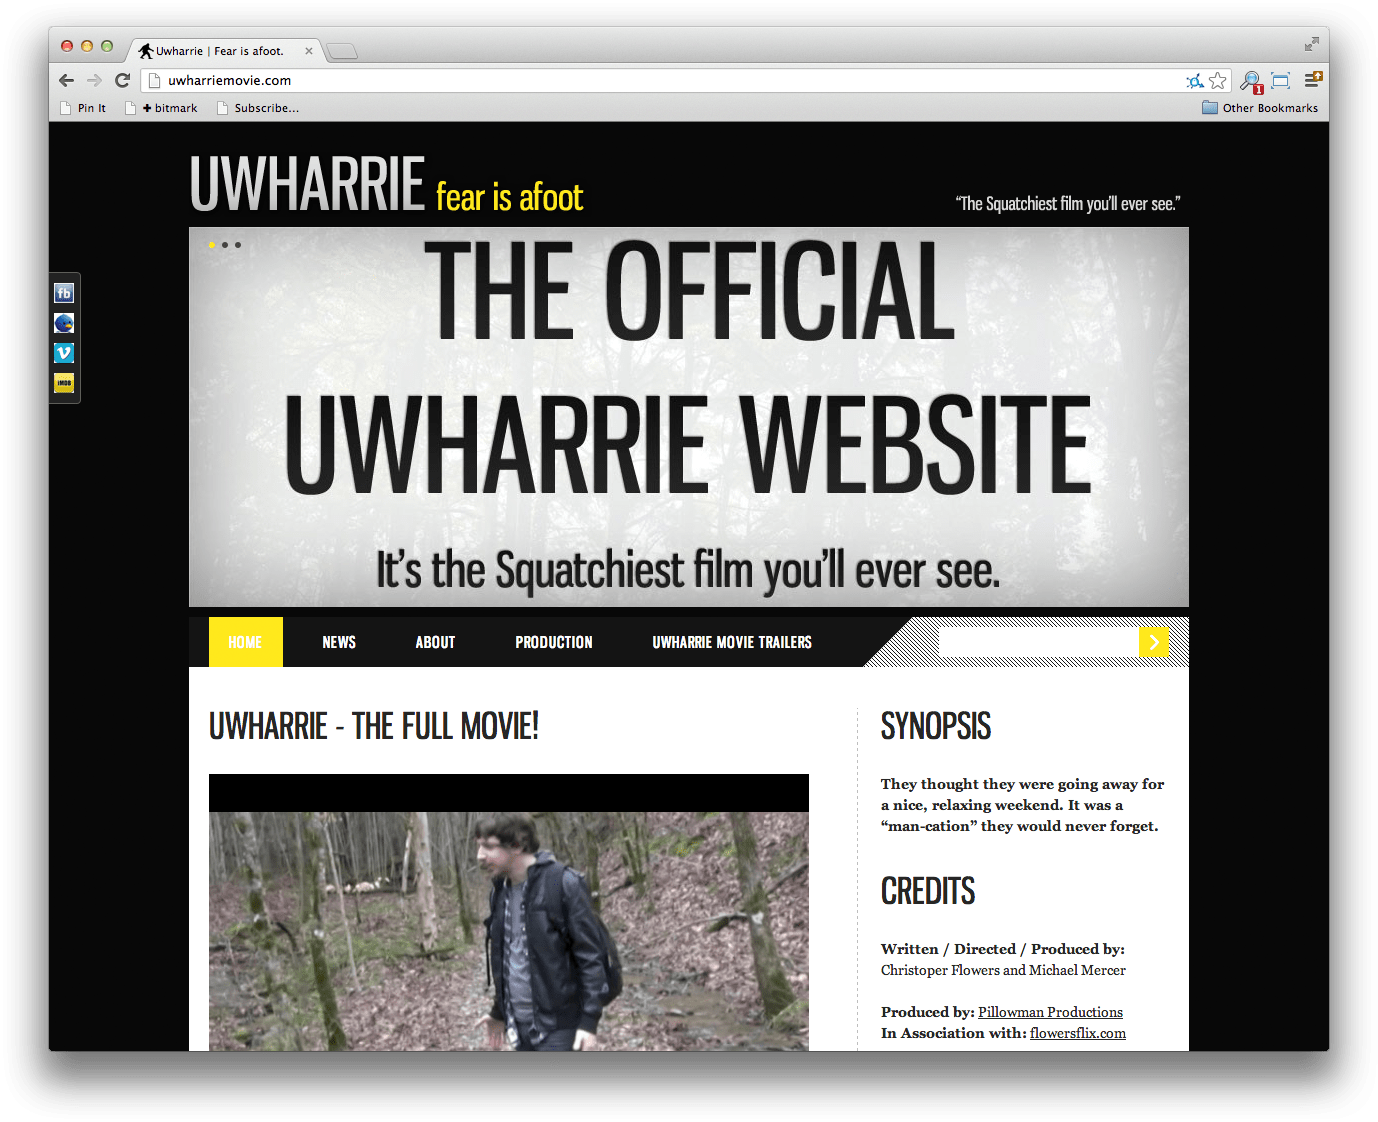 Uwharrie Movie